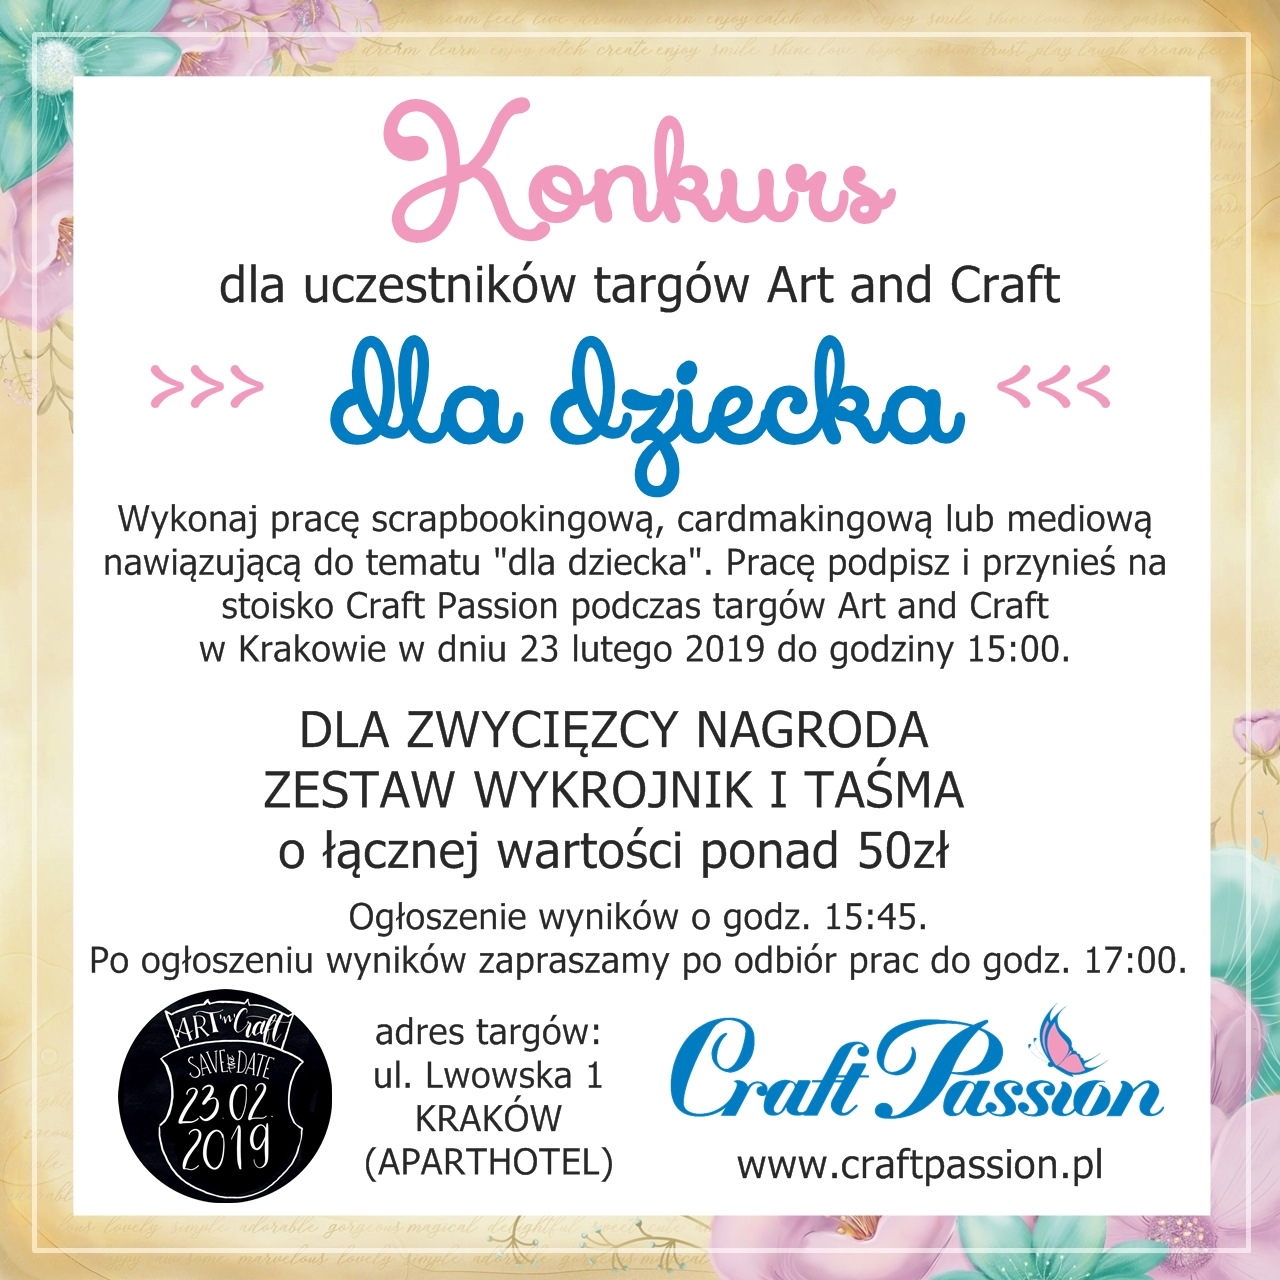 KONKURS - Art and Craft Kraków